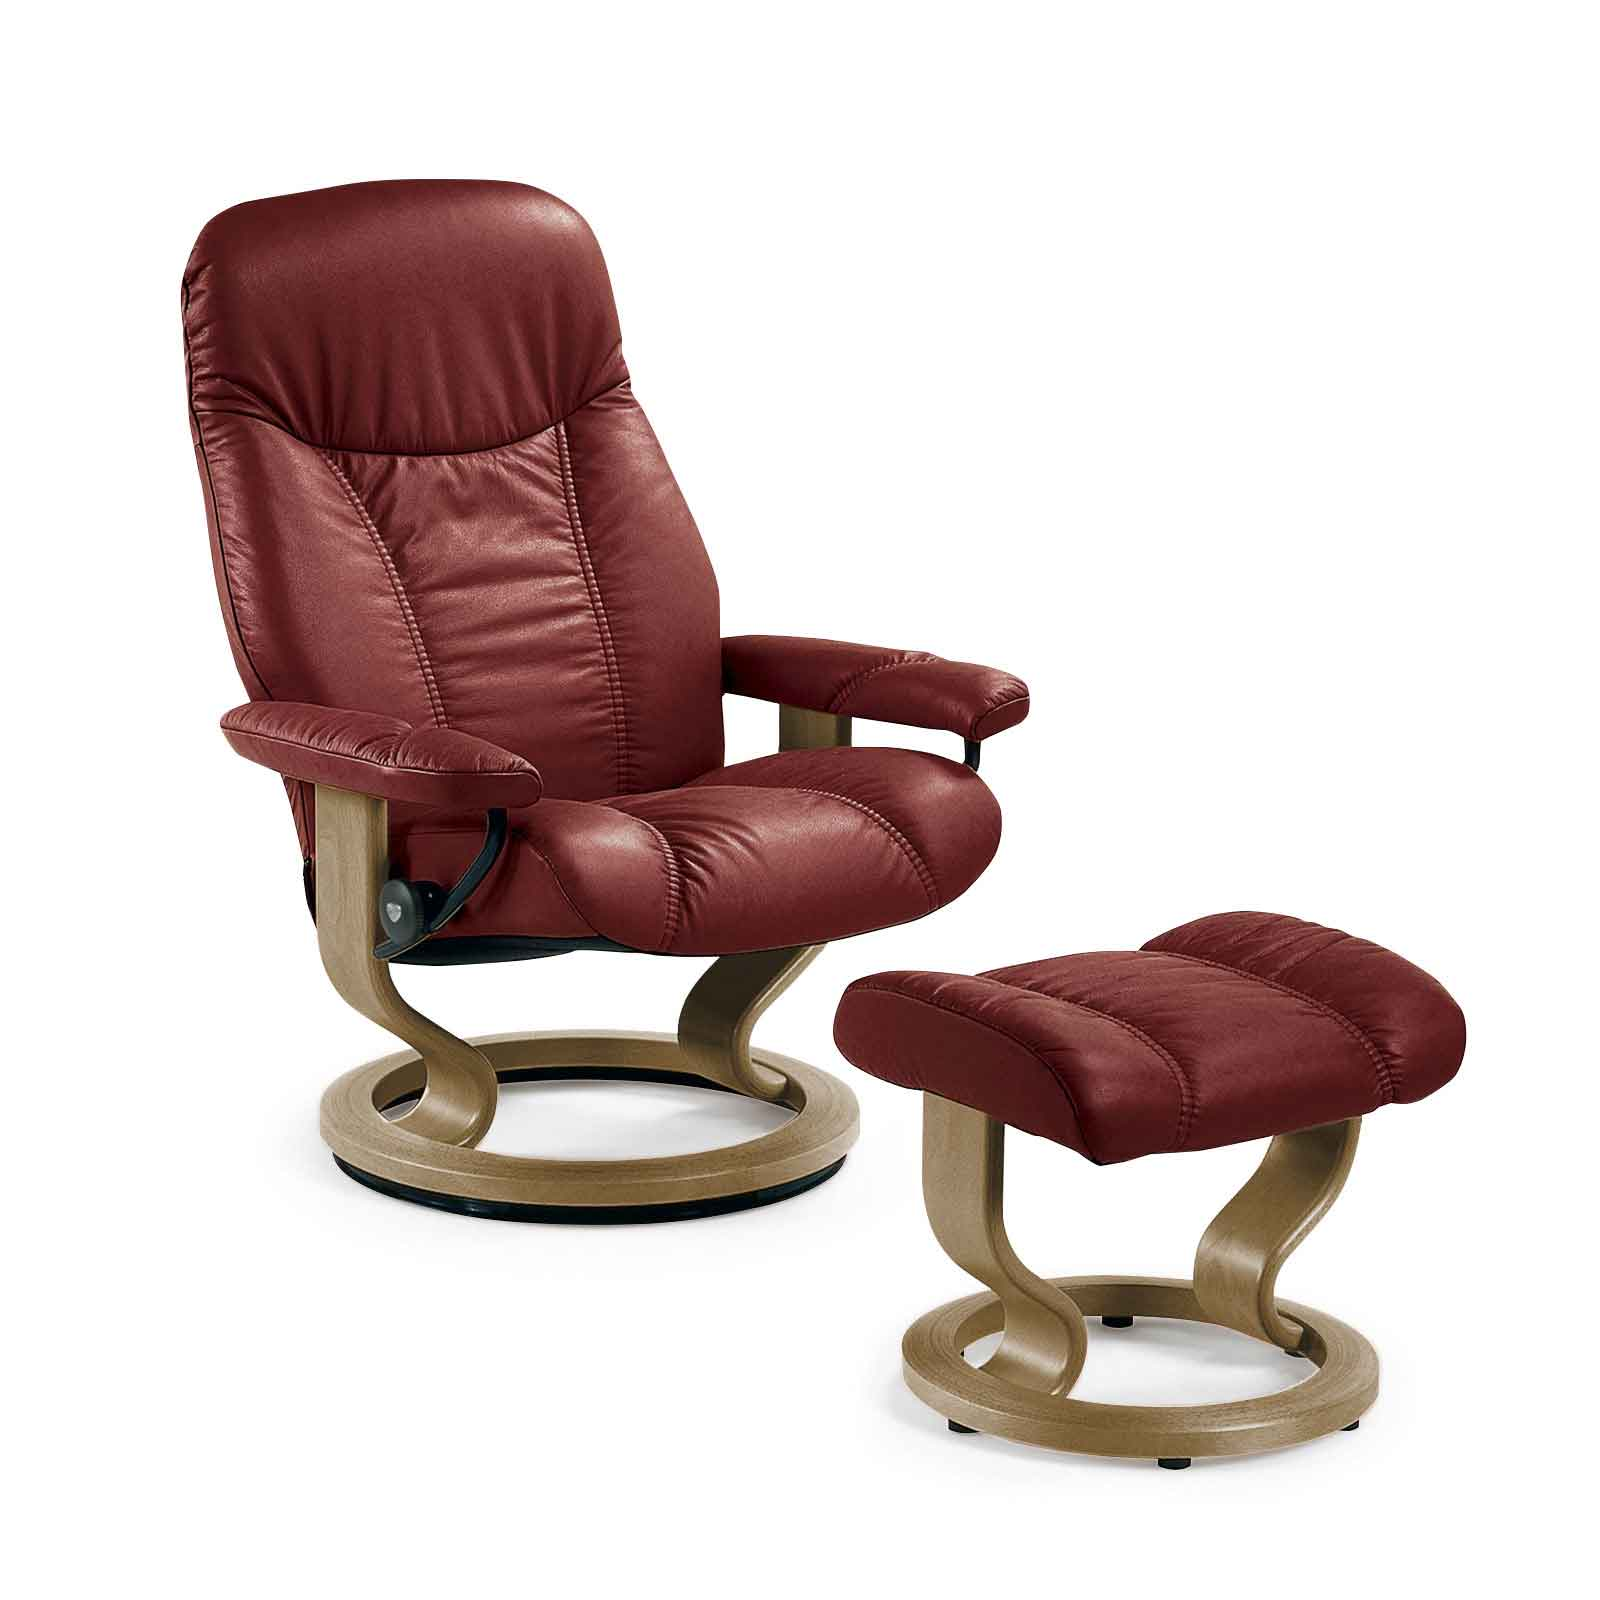 stressless sessel consul s weinrot burgundy mit hocker. Black Bedroom Furniture Sets. Home Design Ideas